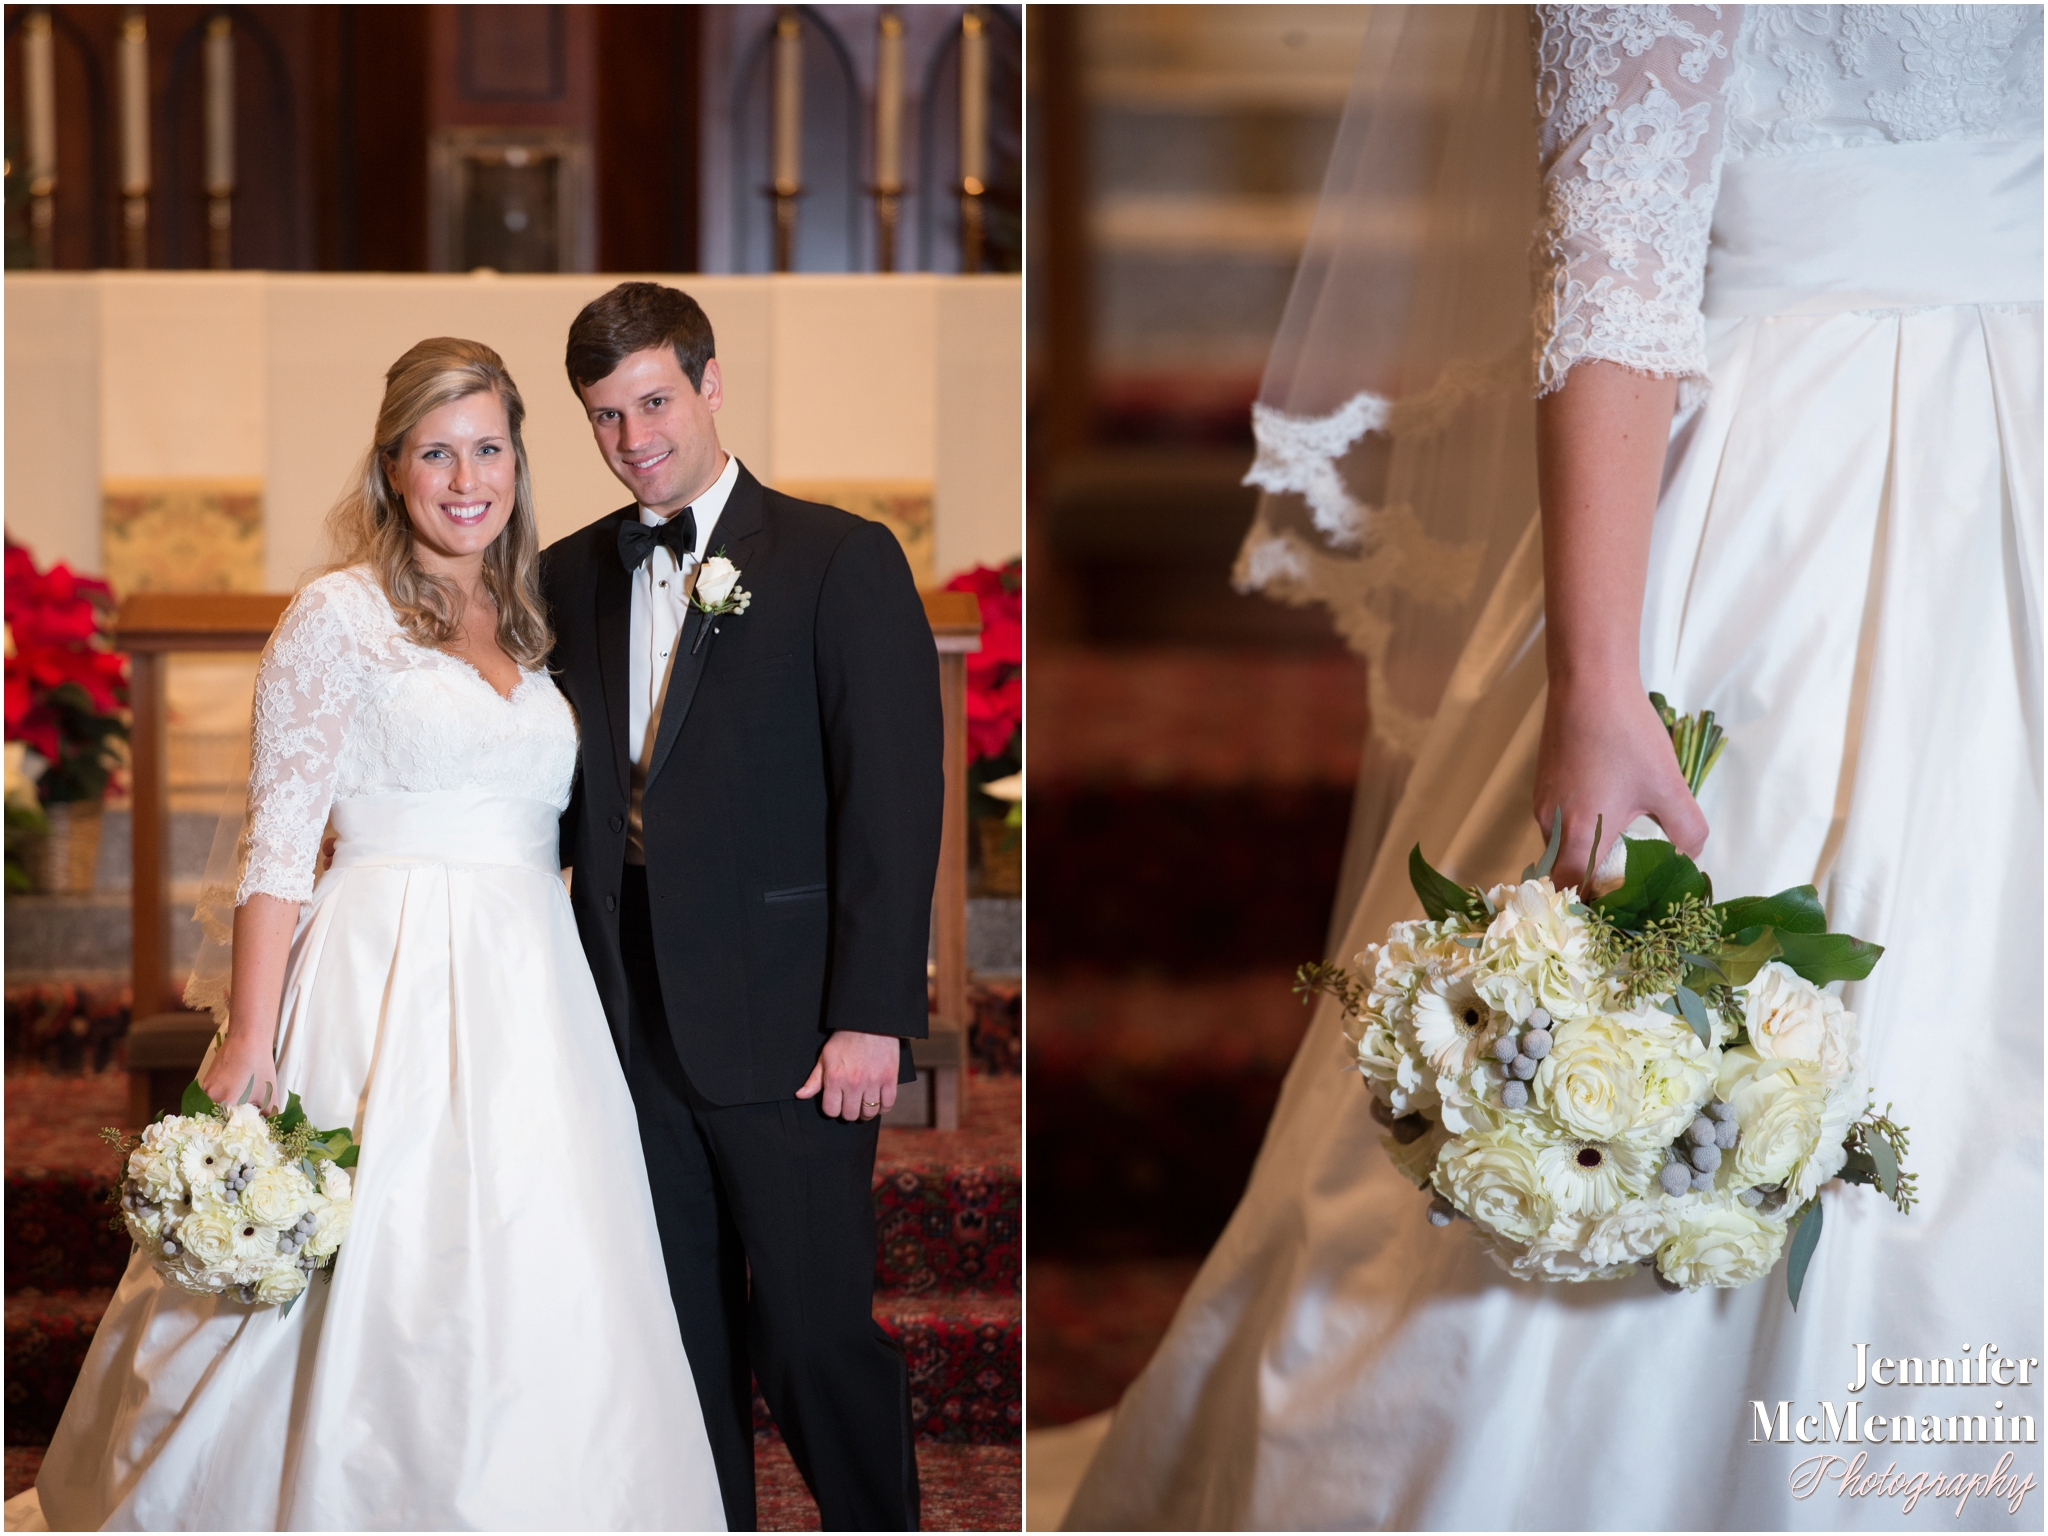 0064_RyanClemmens_01844-0495_JenniferMcMenaminPhotography_Immaculate-Conception-Church_The-Cloisters_Baltimore-wedding-photography_Baltimore-wedding-photographer